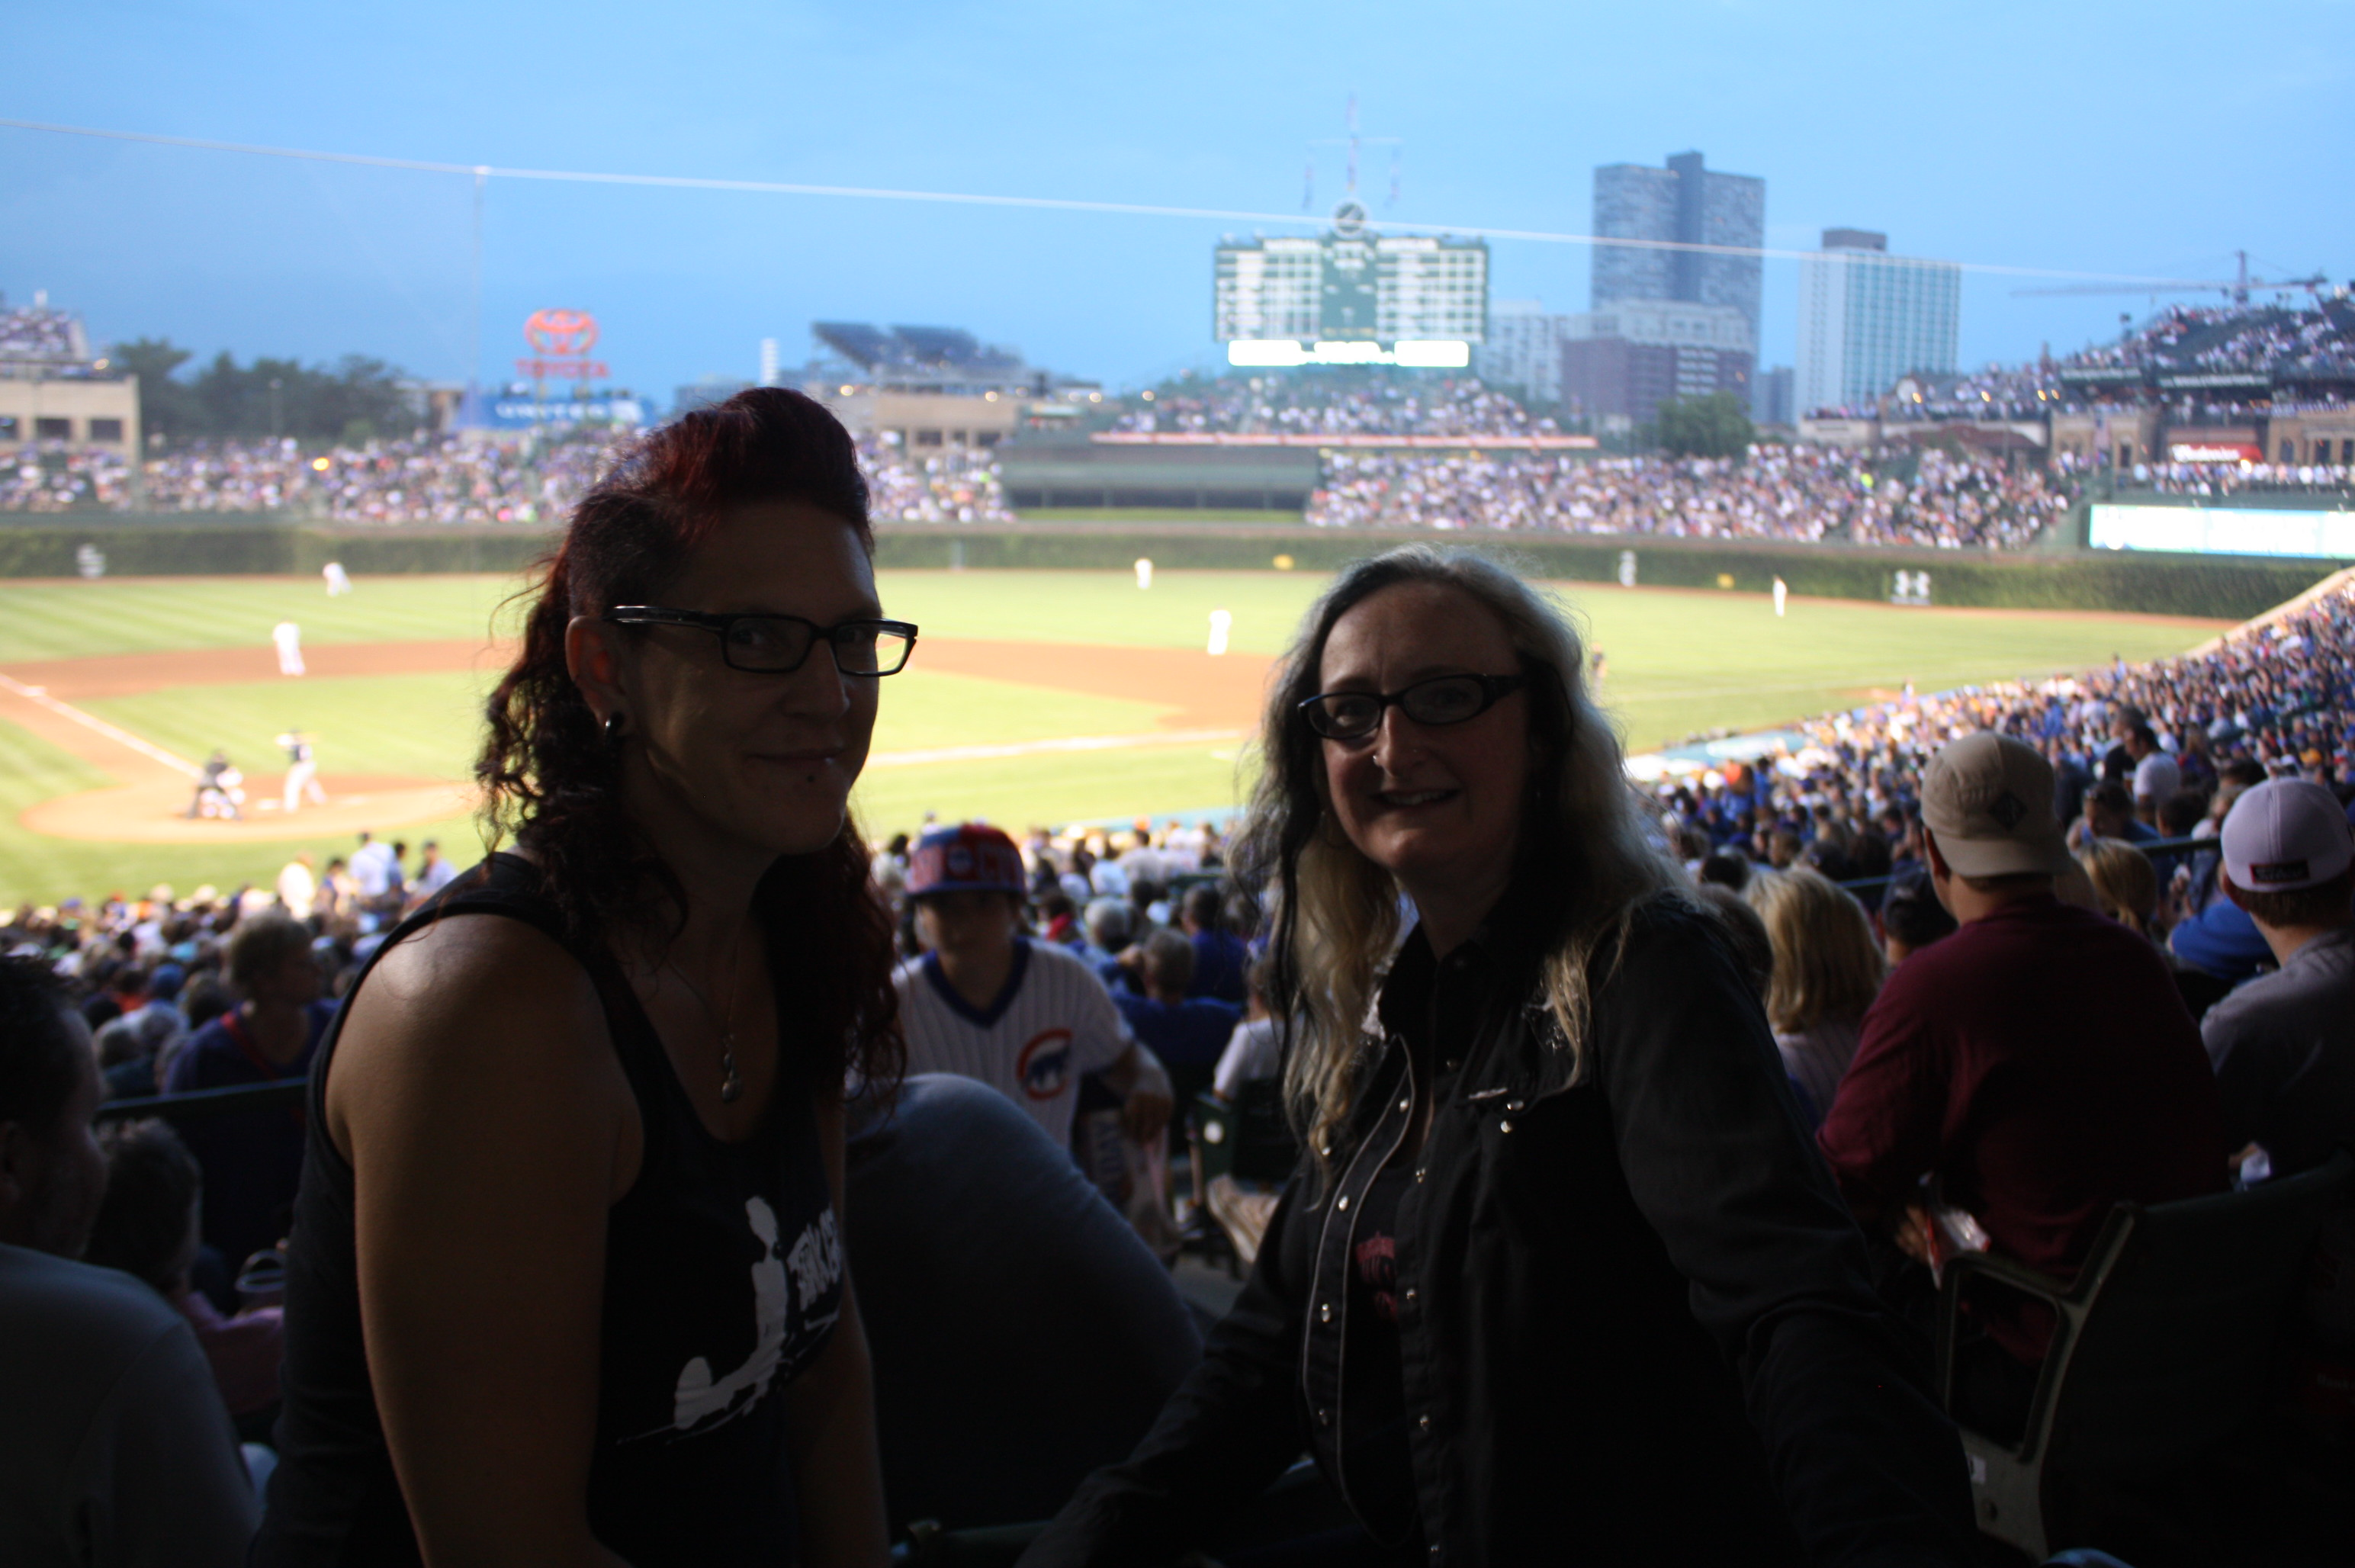 Watching Chicago Cubs at Wrigley Field